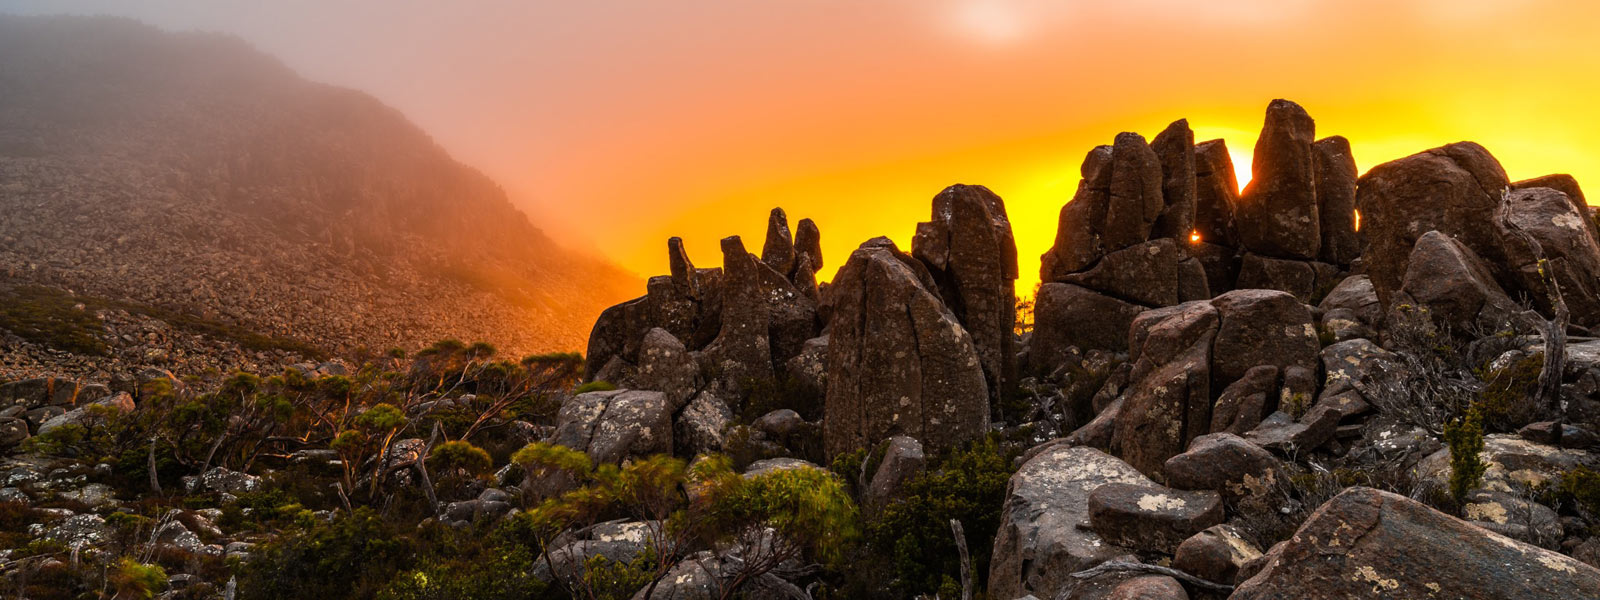 Mount Wellington at sunrise by Geoff Murray